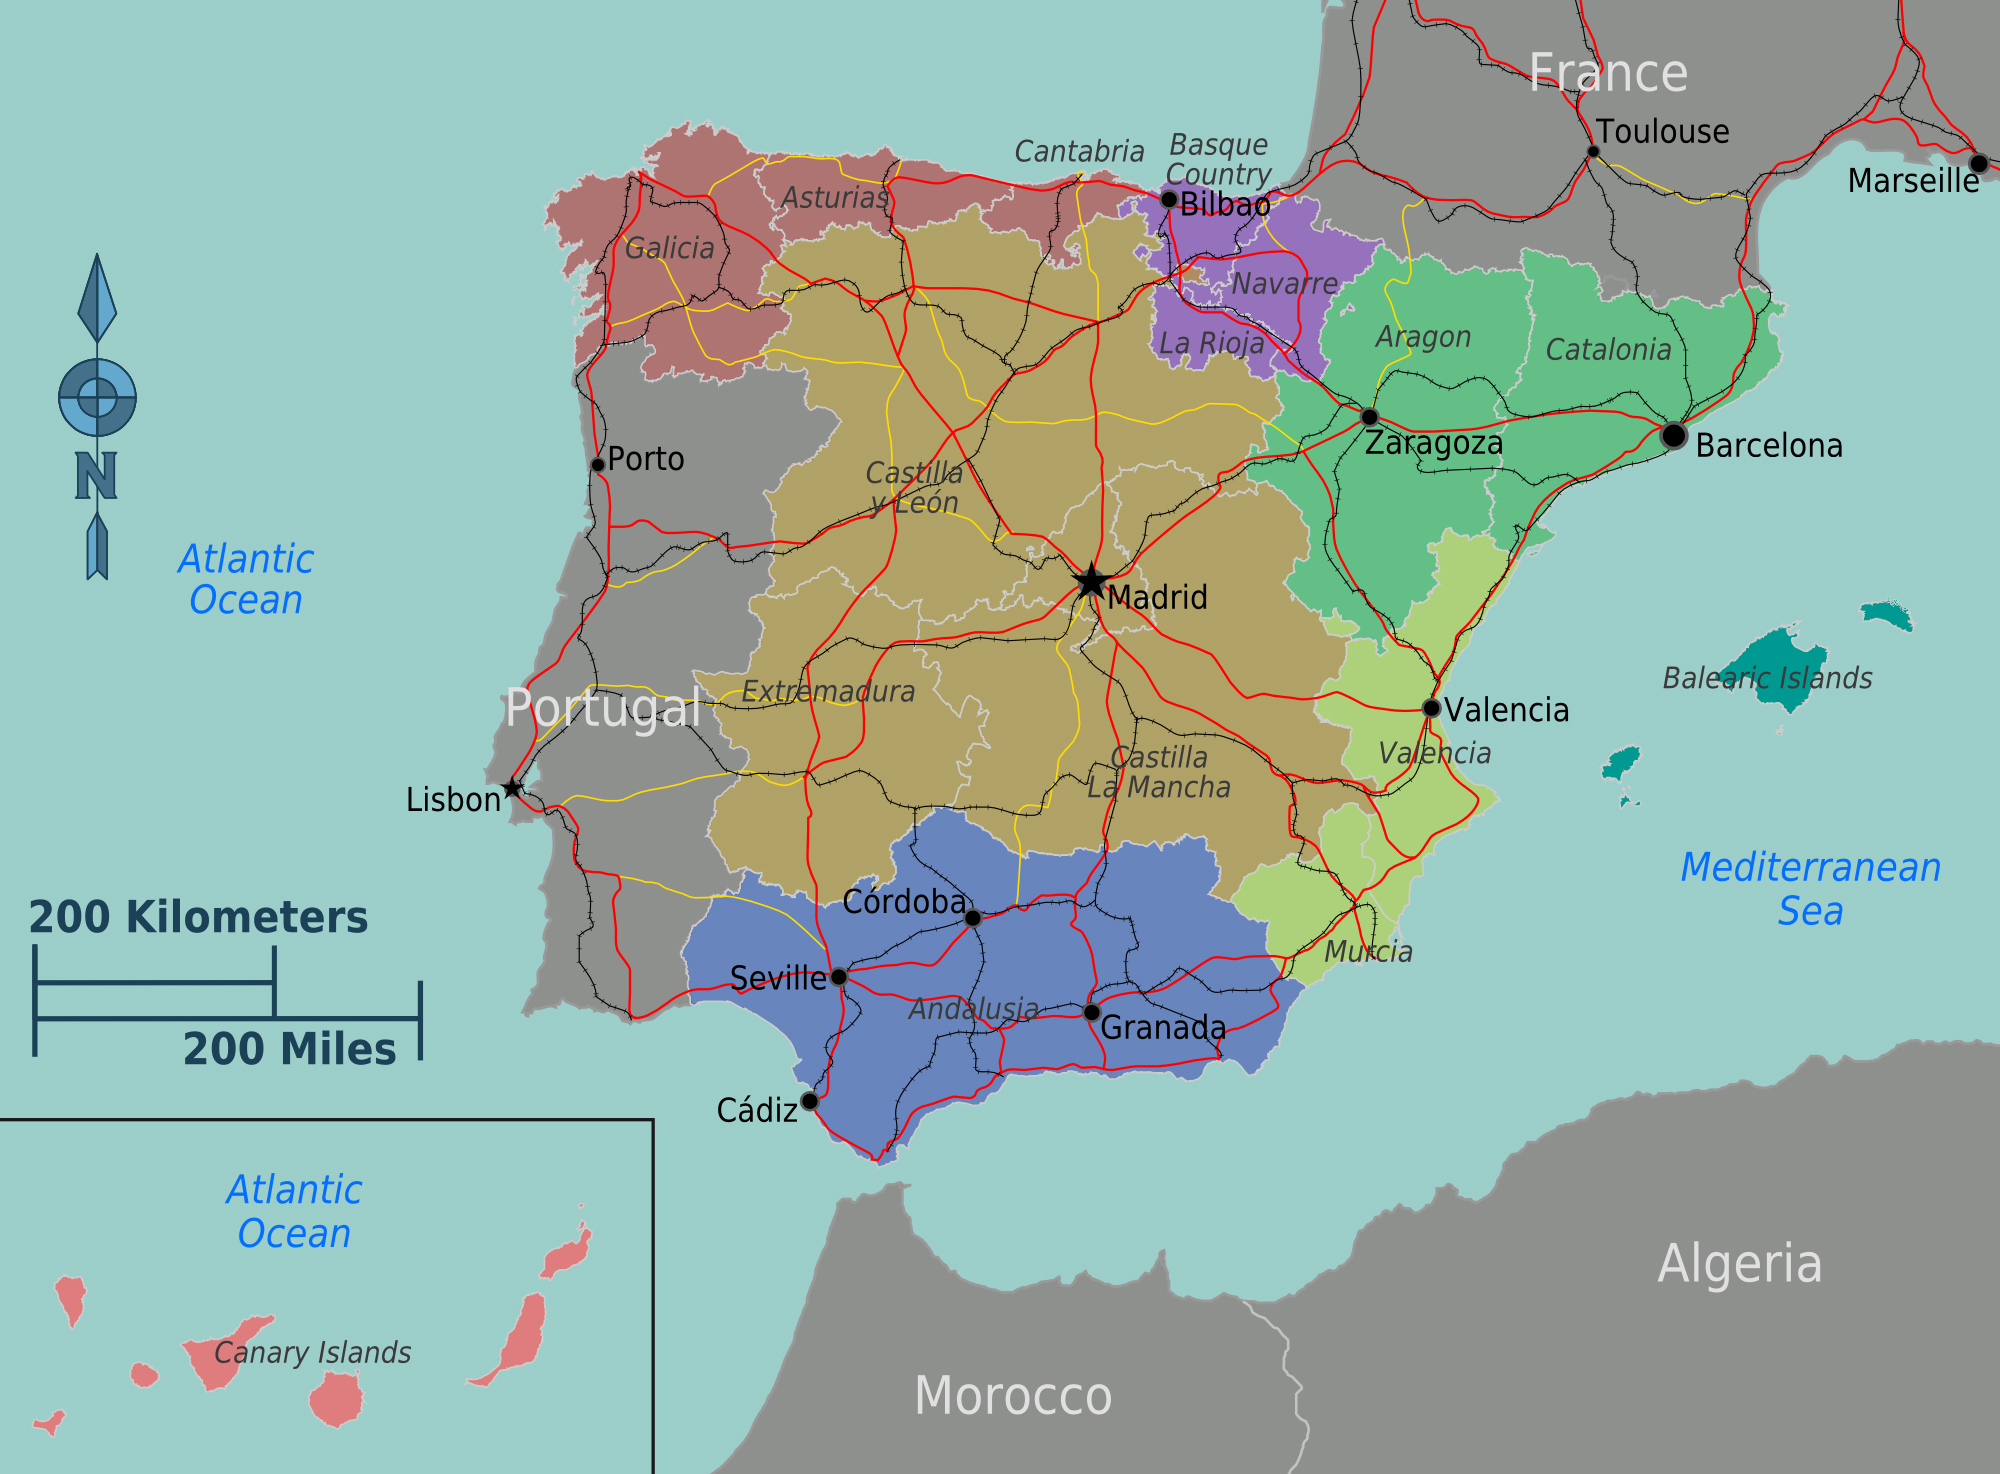 Spain Map Of Europe.Large Regions Map Of Spain Spain Europe Mapsland Maps Of The